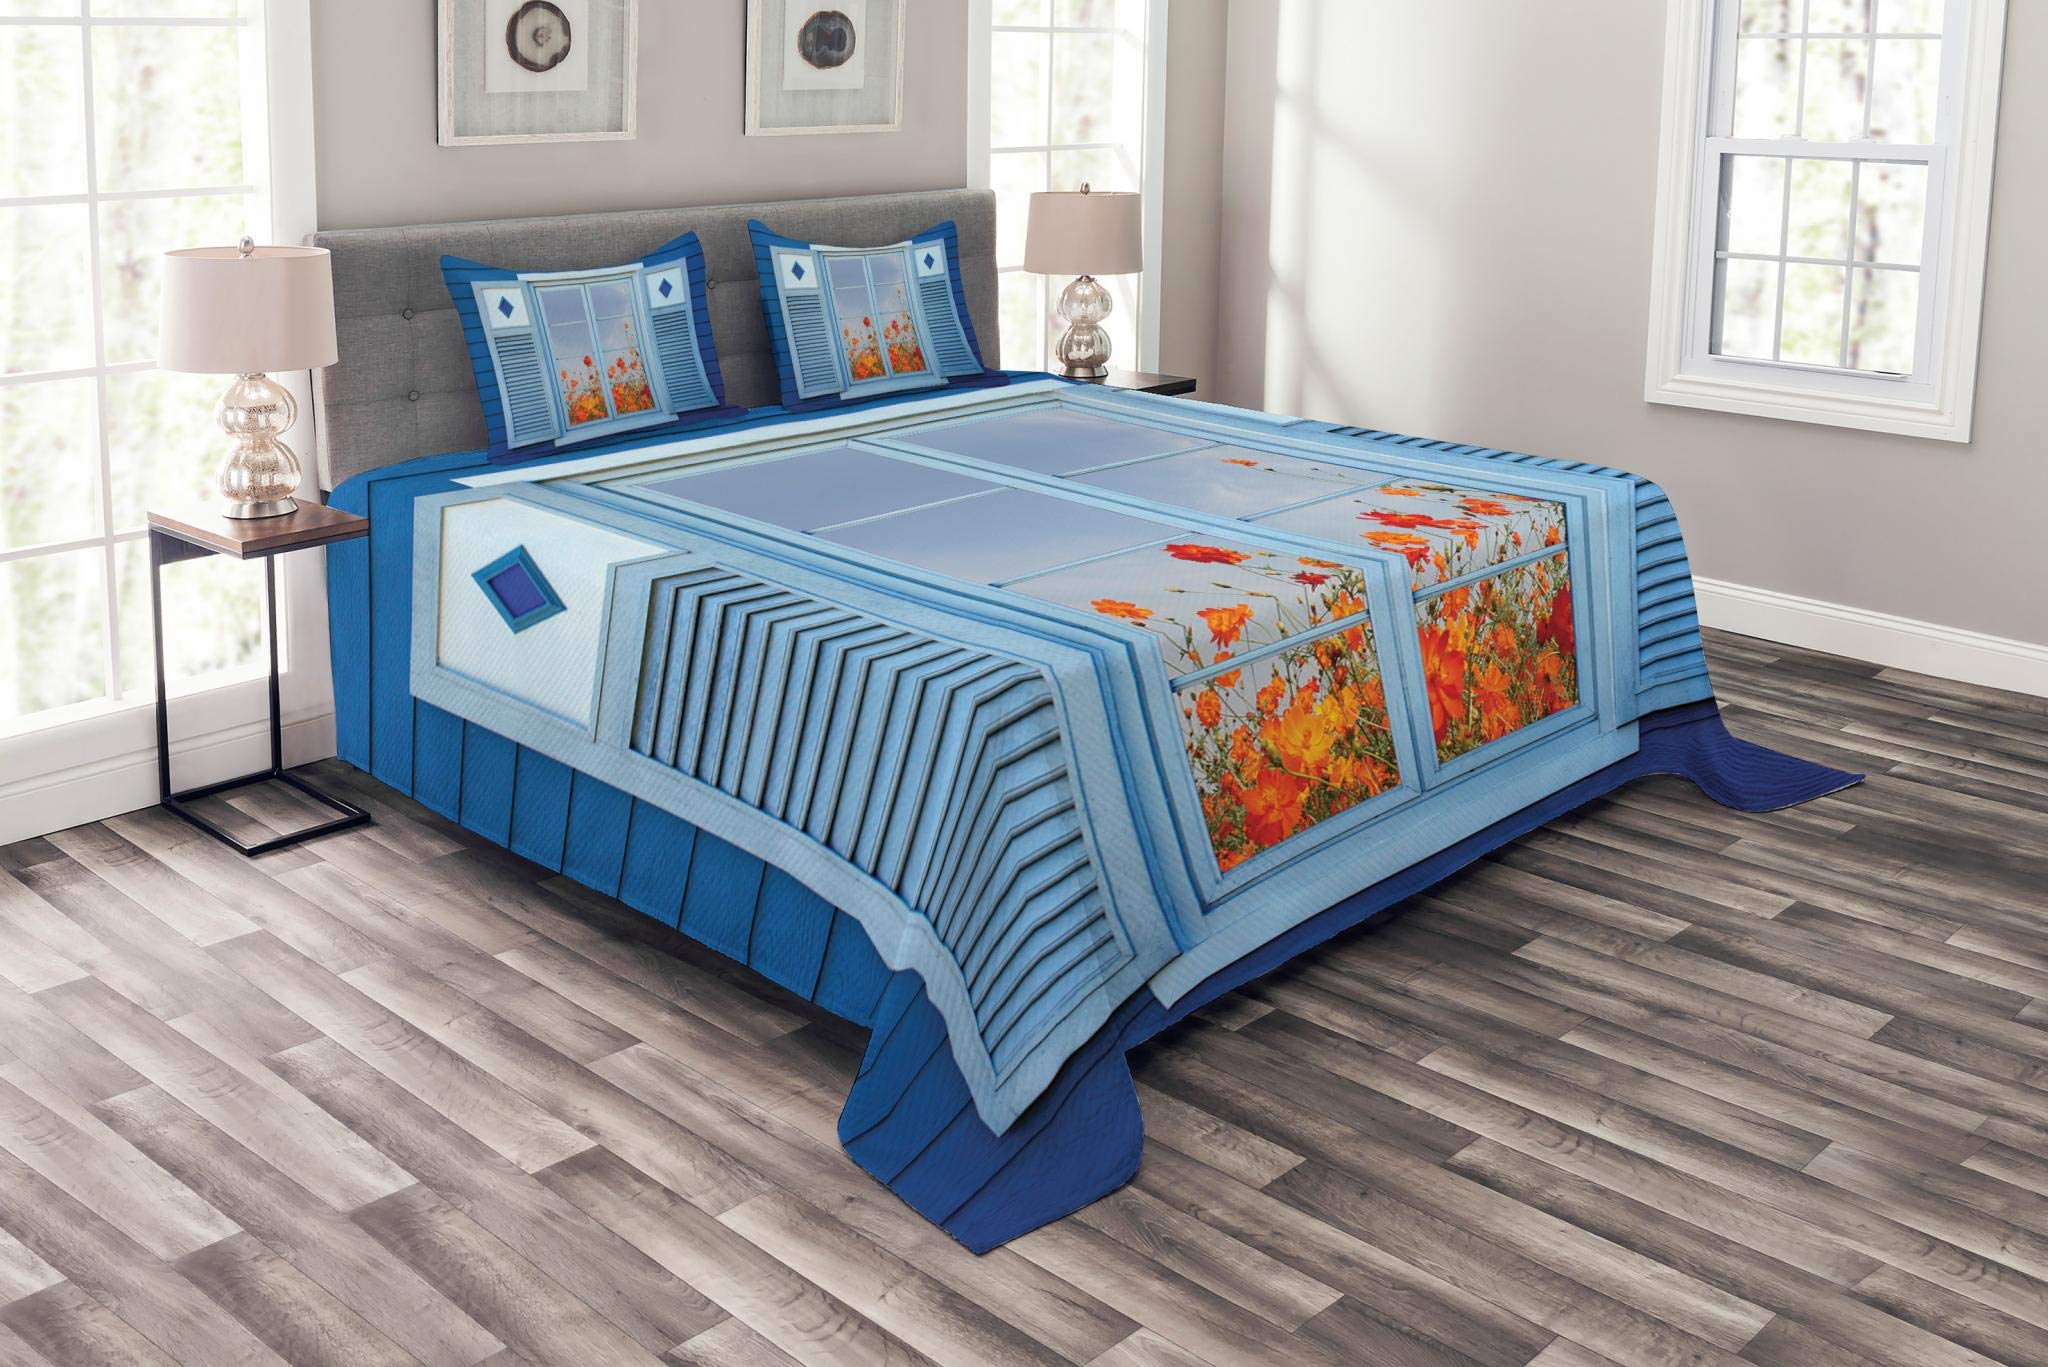 Lunarable Shutters Bedspread Set Queen Size, Cosmos Flower Blossom in Front of Wood Window Reflection Summer Garden Art, Decorative Quilted 3 Piece Coverlet Set with 2 Pillow Shams, Navy Aqua Orange